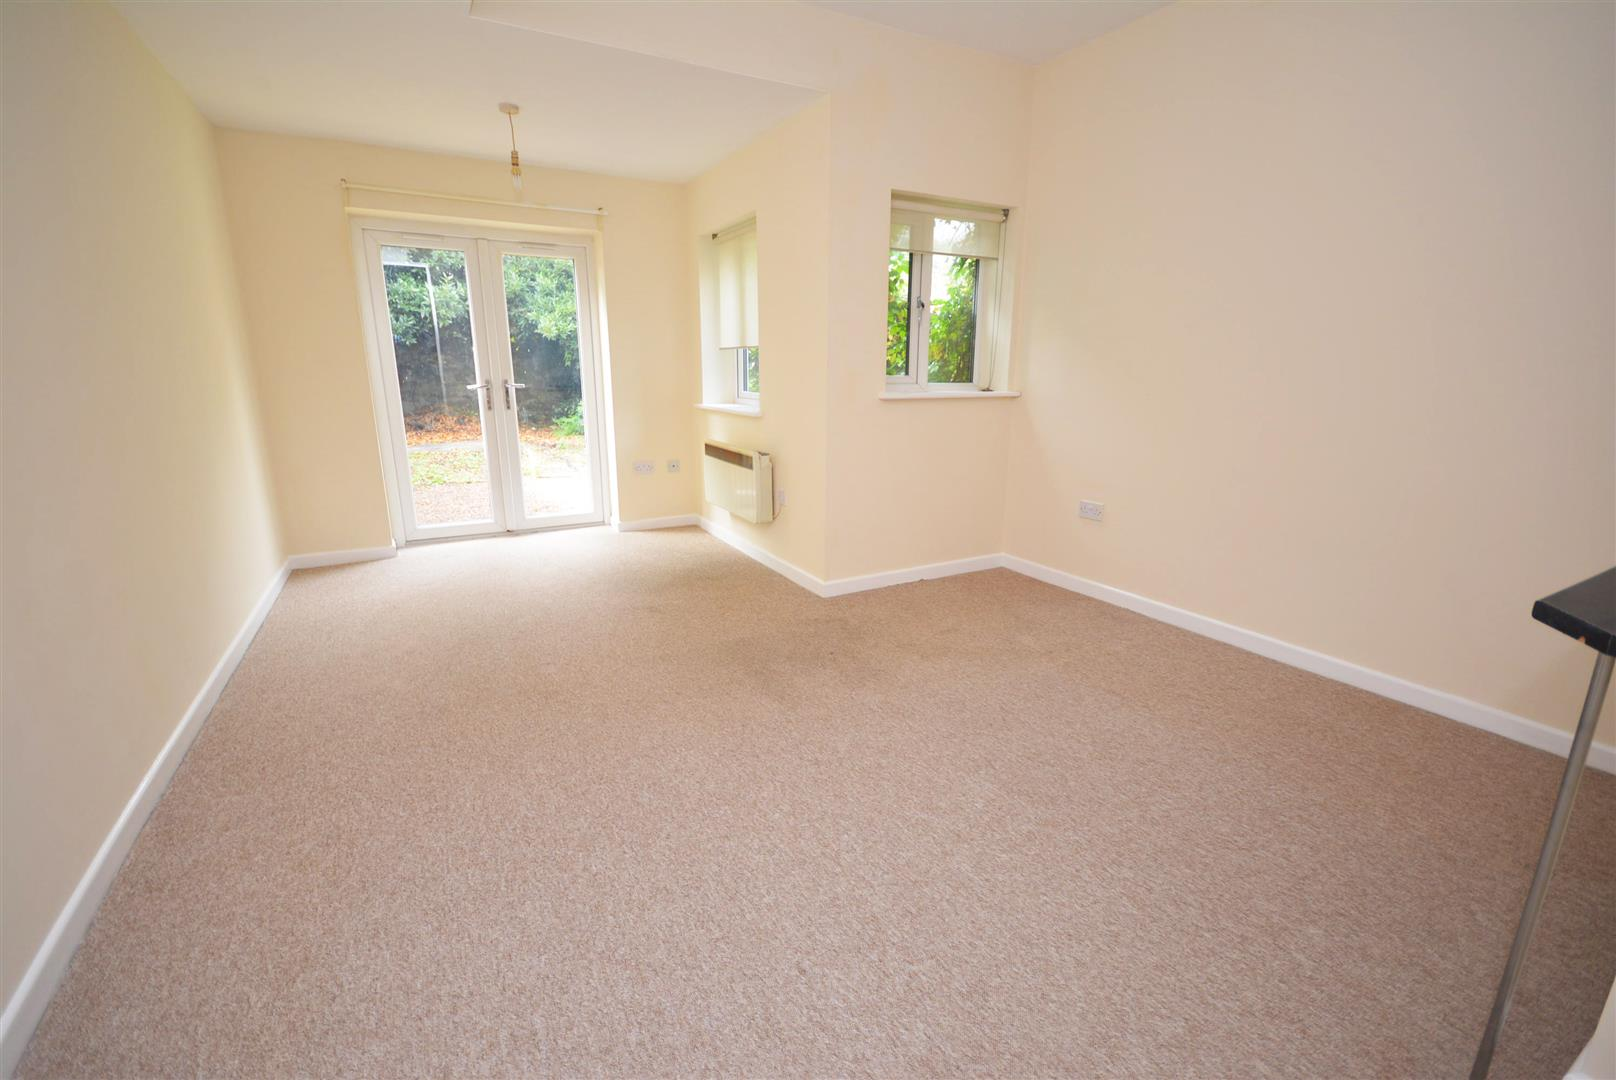 1 bed apartment to rent in Bedford Street, Cardiff, CF24